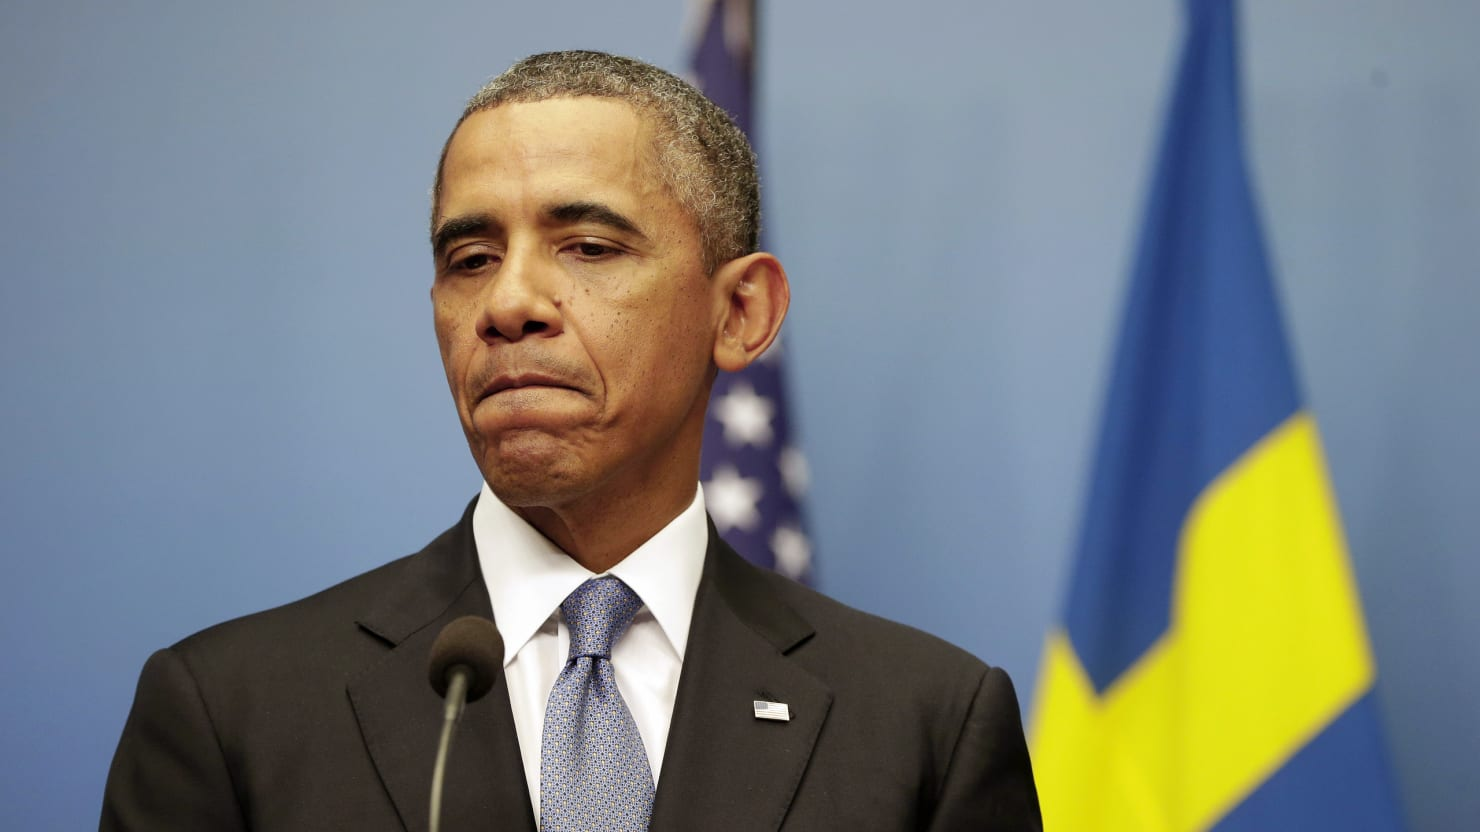 Dear Obama, It's Time to Return Your Nobel Peace Prize. Here's Why.